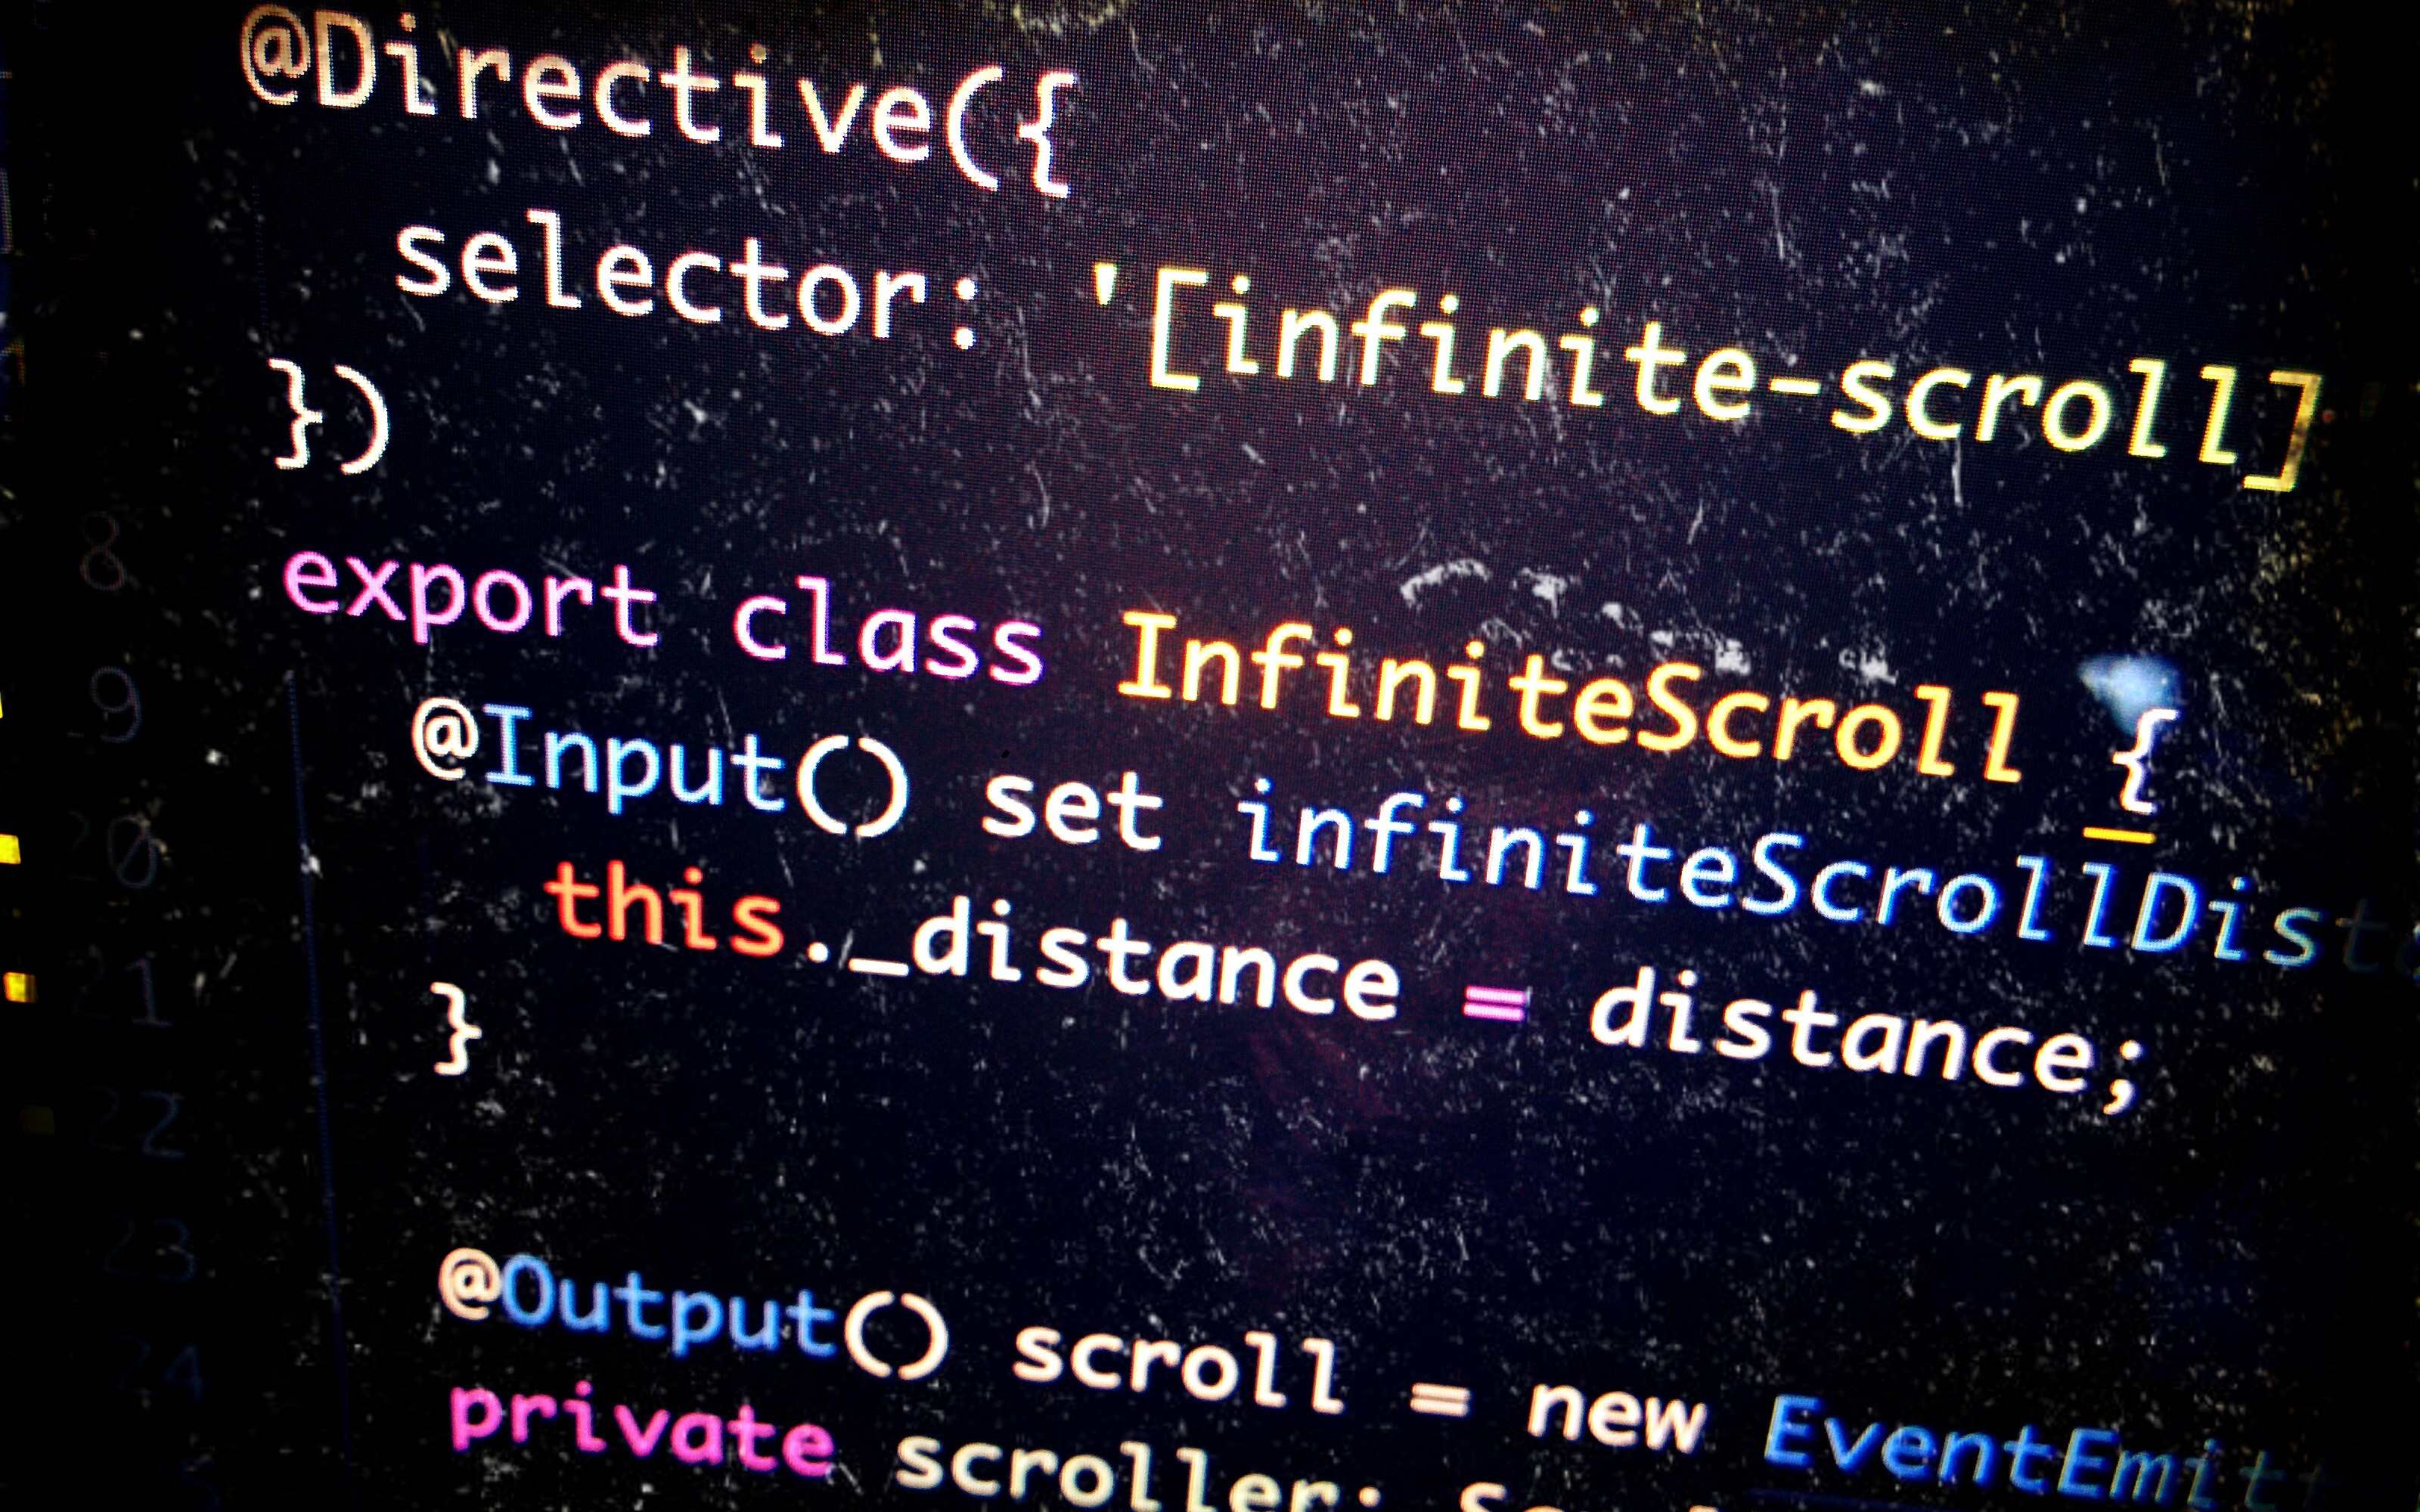 Angular 2: Attribute @Directive() and Creating An Infinite